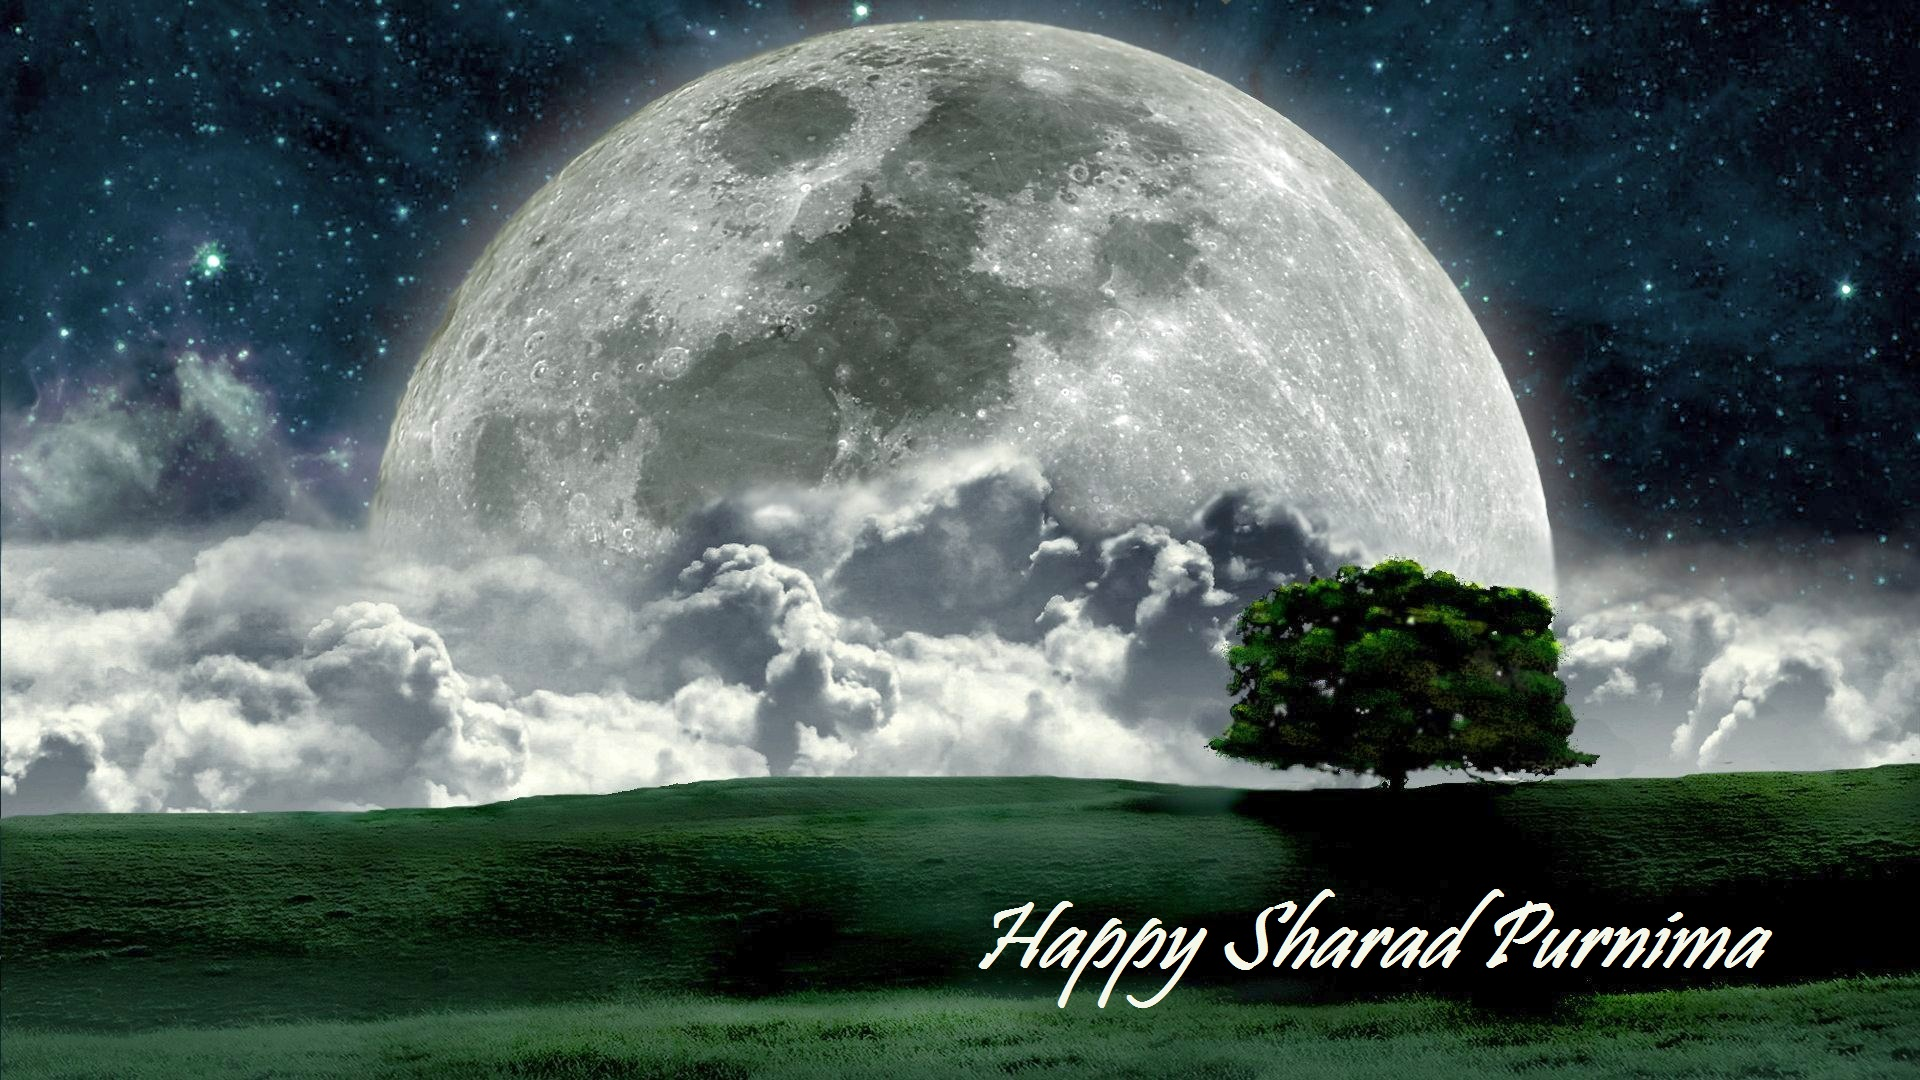 Happy Sharad Purnima Beautiful